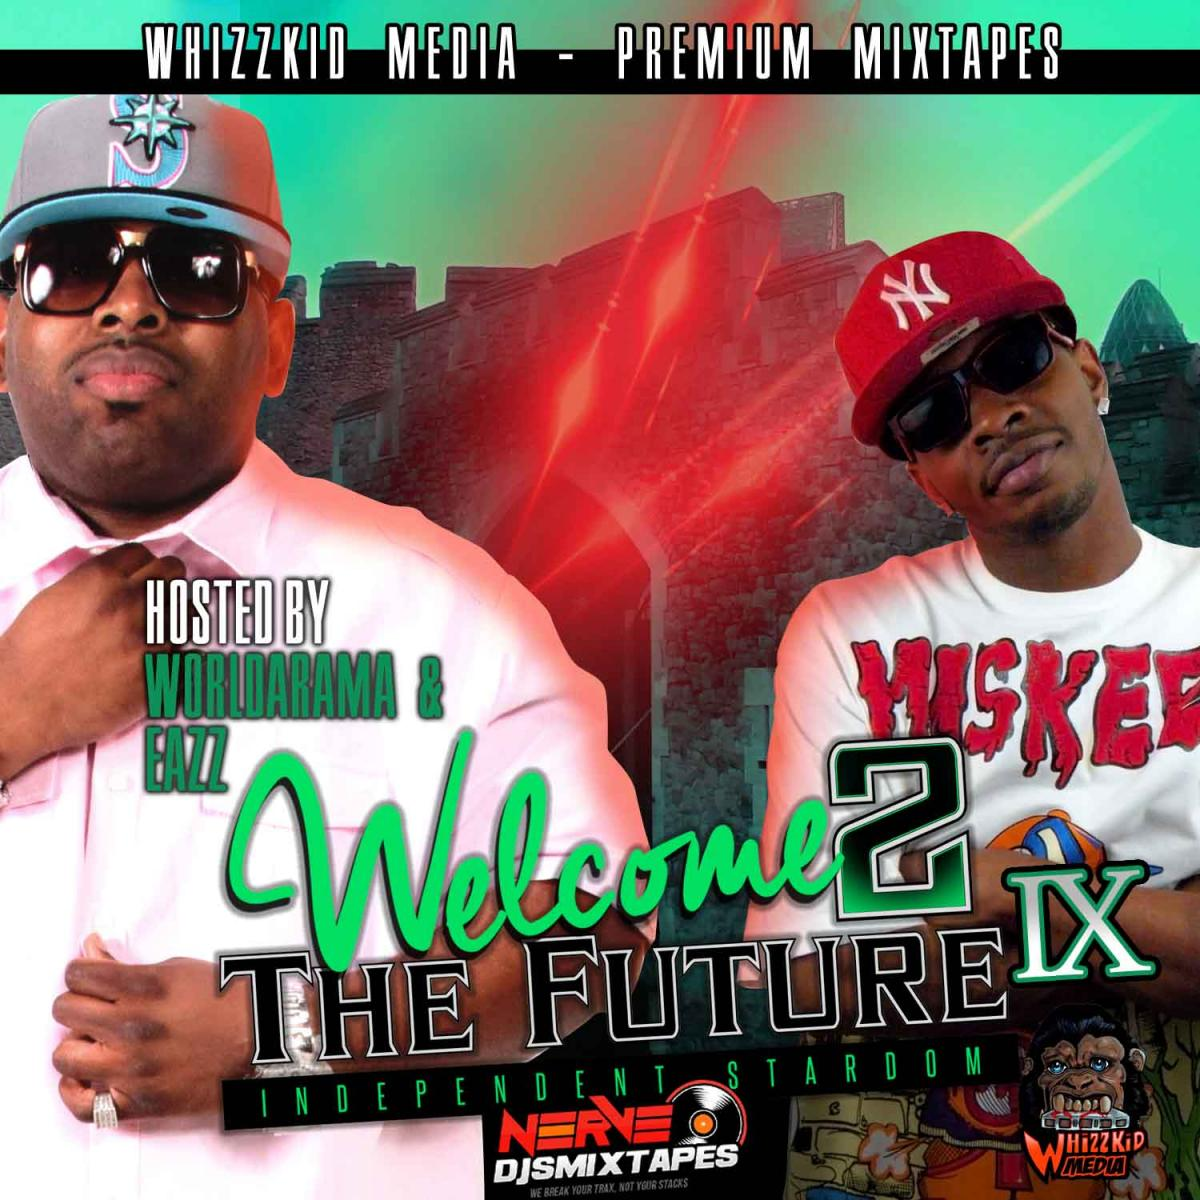 Upcoming: Various Artists - Welcome 2 The Future Vol. 9 (hosted By Eazz And Worldarama)